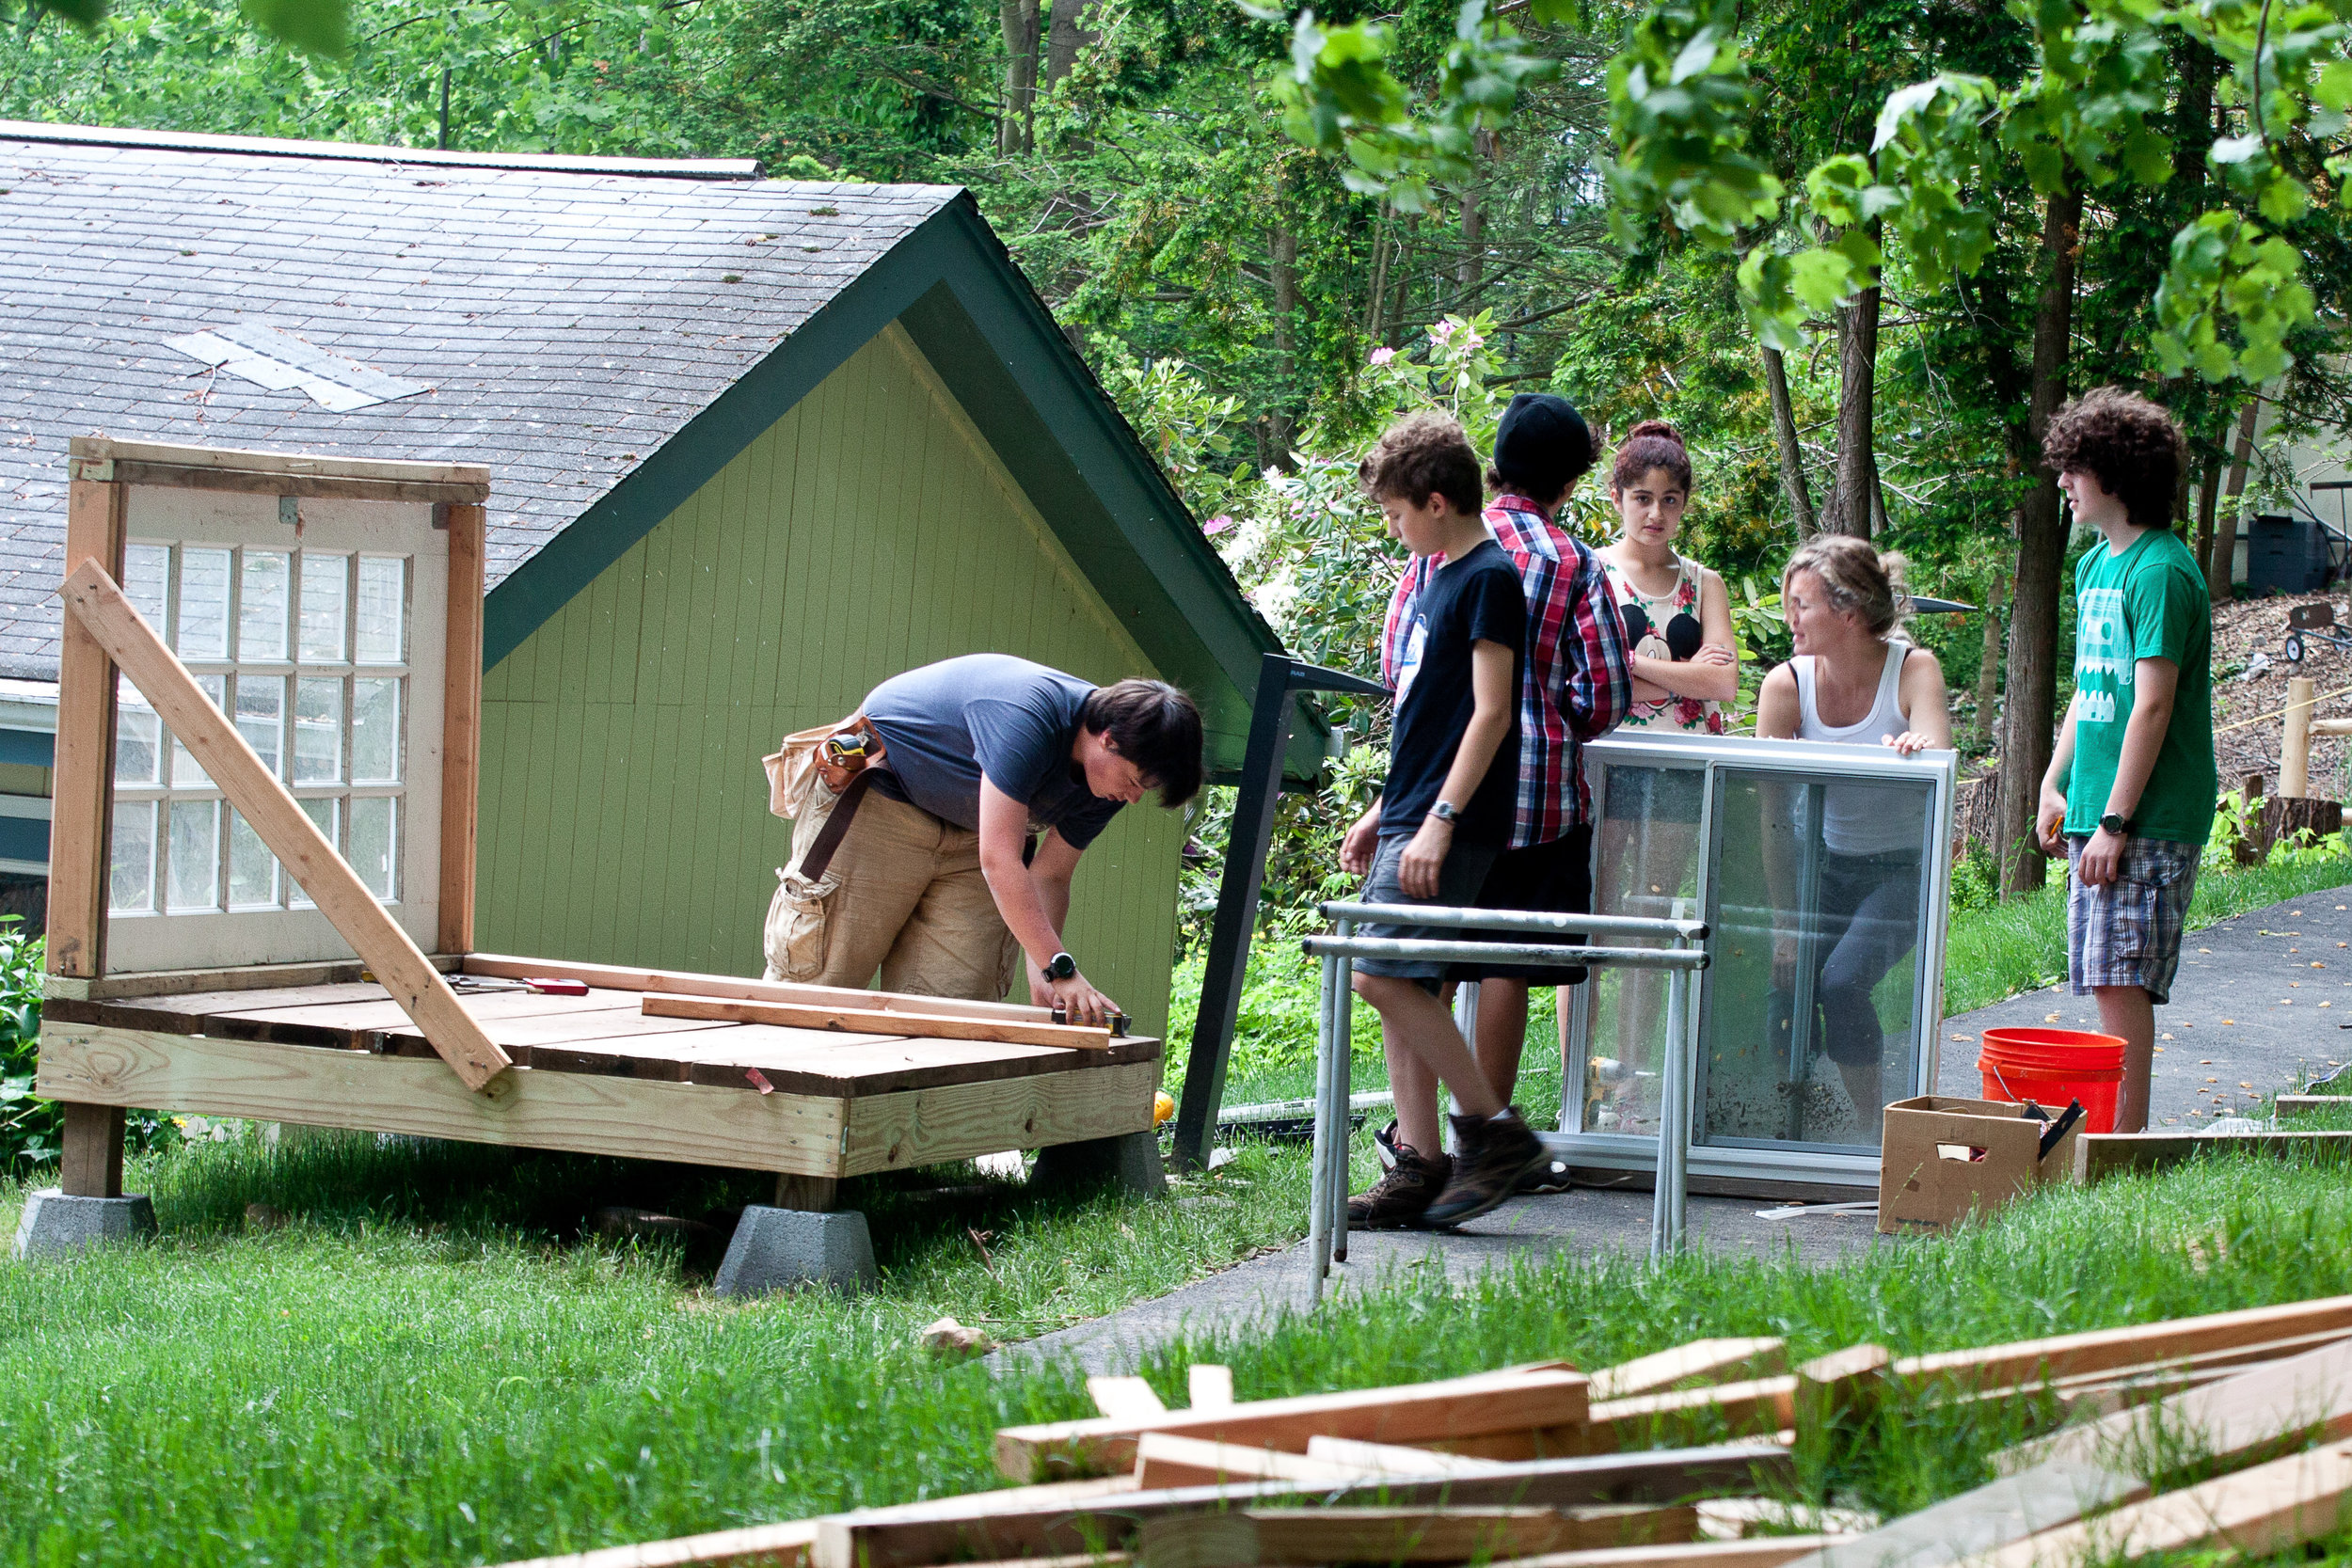 Remy and classmates designing and building a cold frame for the school's gardening program.